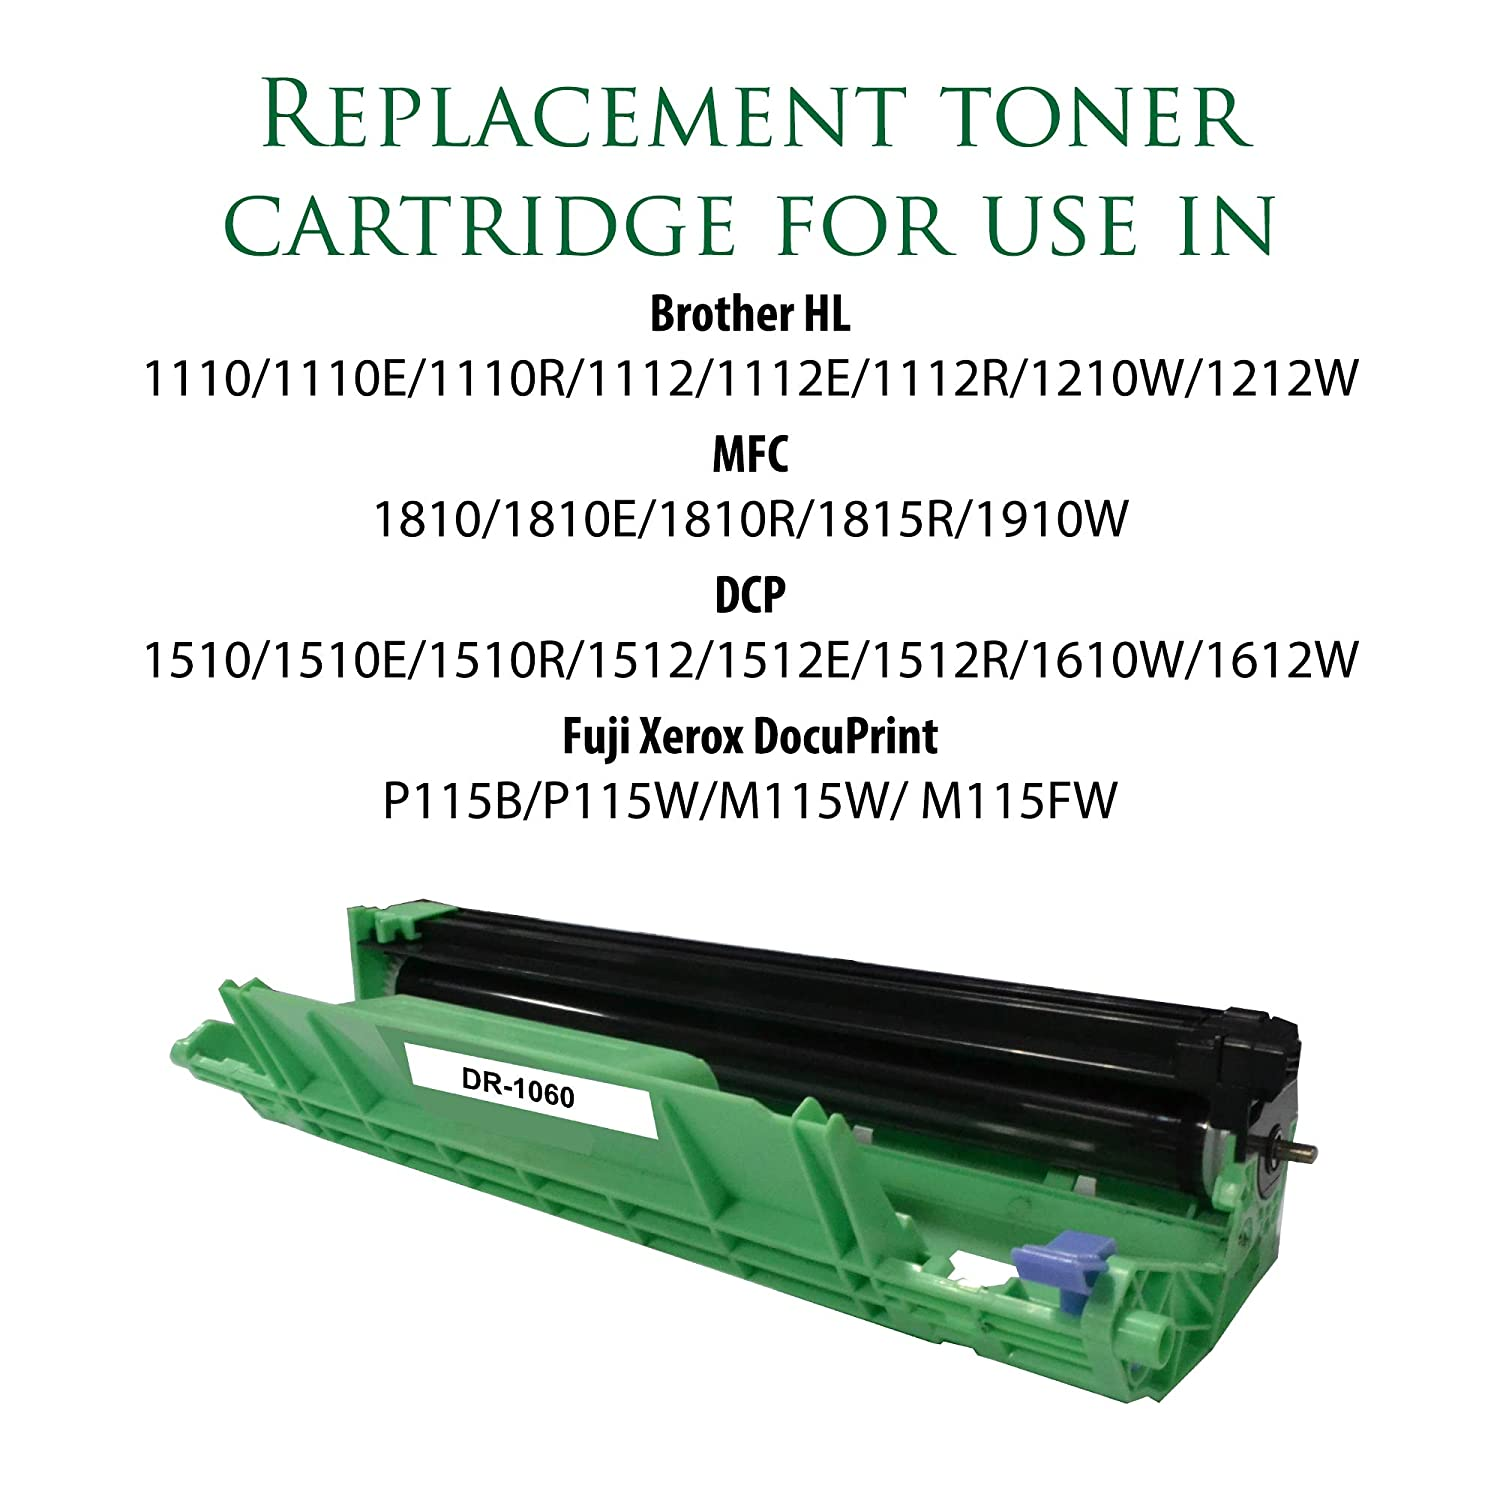 Replacement Toner Cartridge For Dr 1060 Remanufactured Fuji Xerox Docuprint M115w Standard Yield Laser Printer Brother Office Products